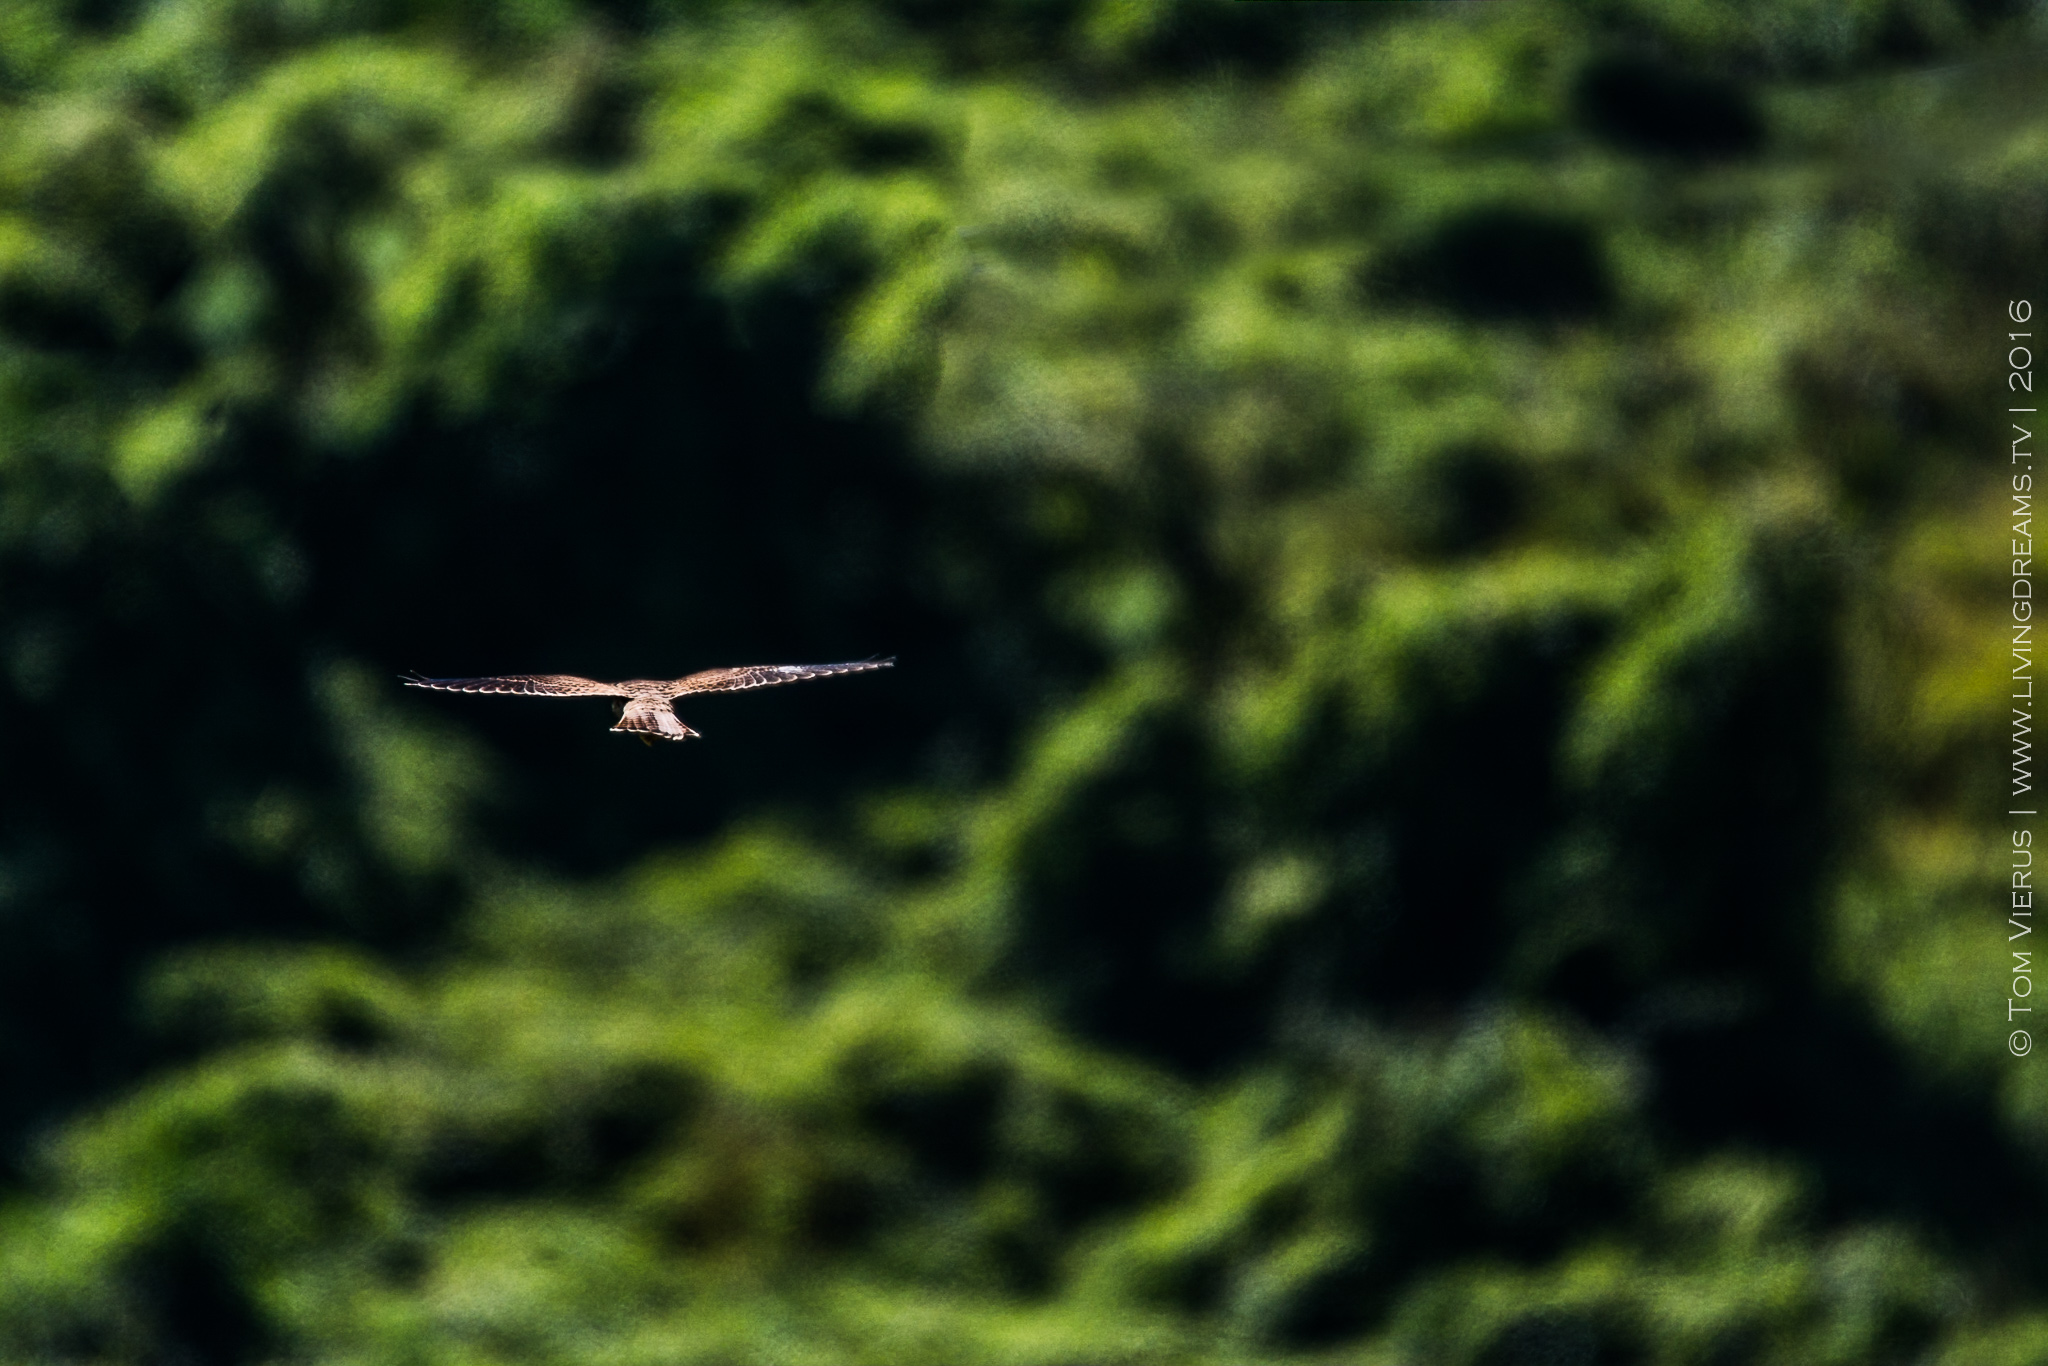 A bird of prey hovering above the ground and ready to strike any moment - any bird lovers out there than can help identify this beauty here?